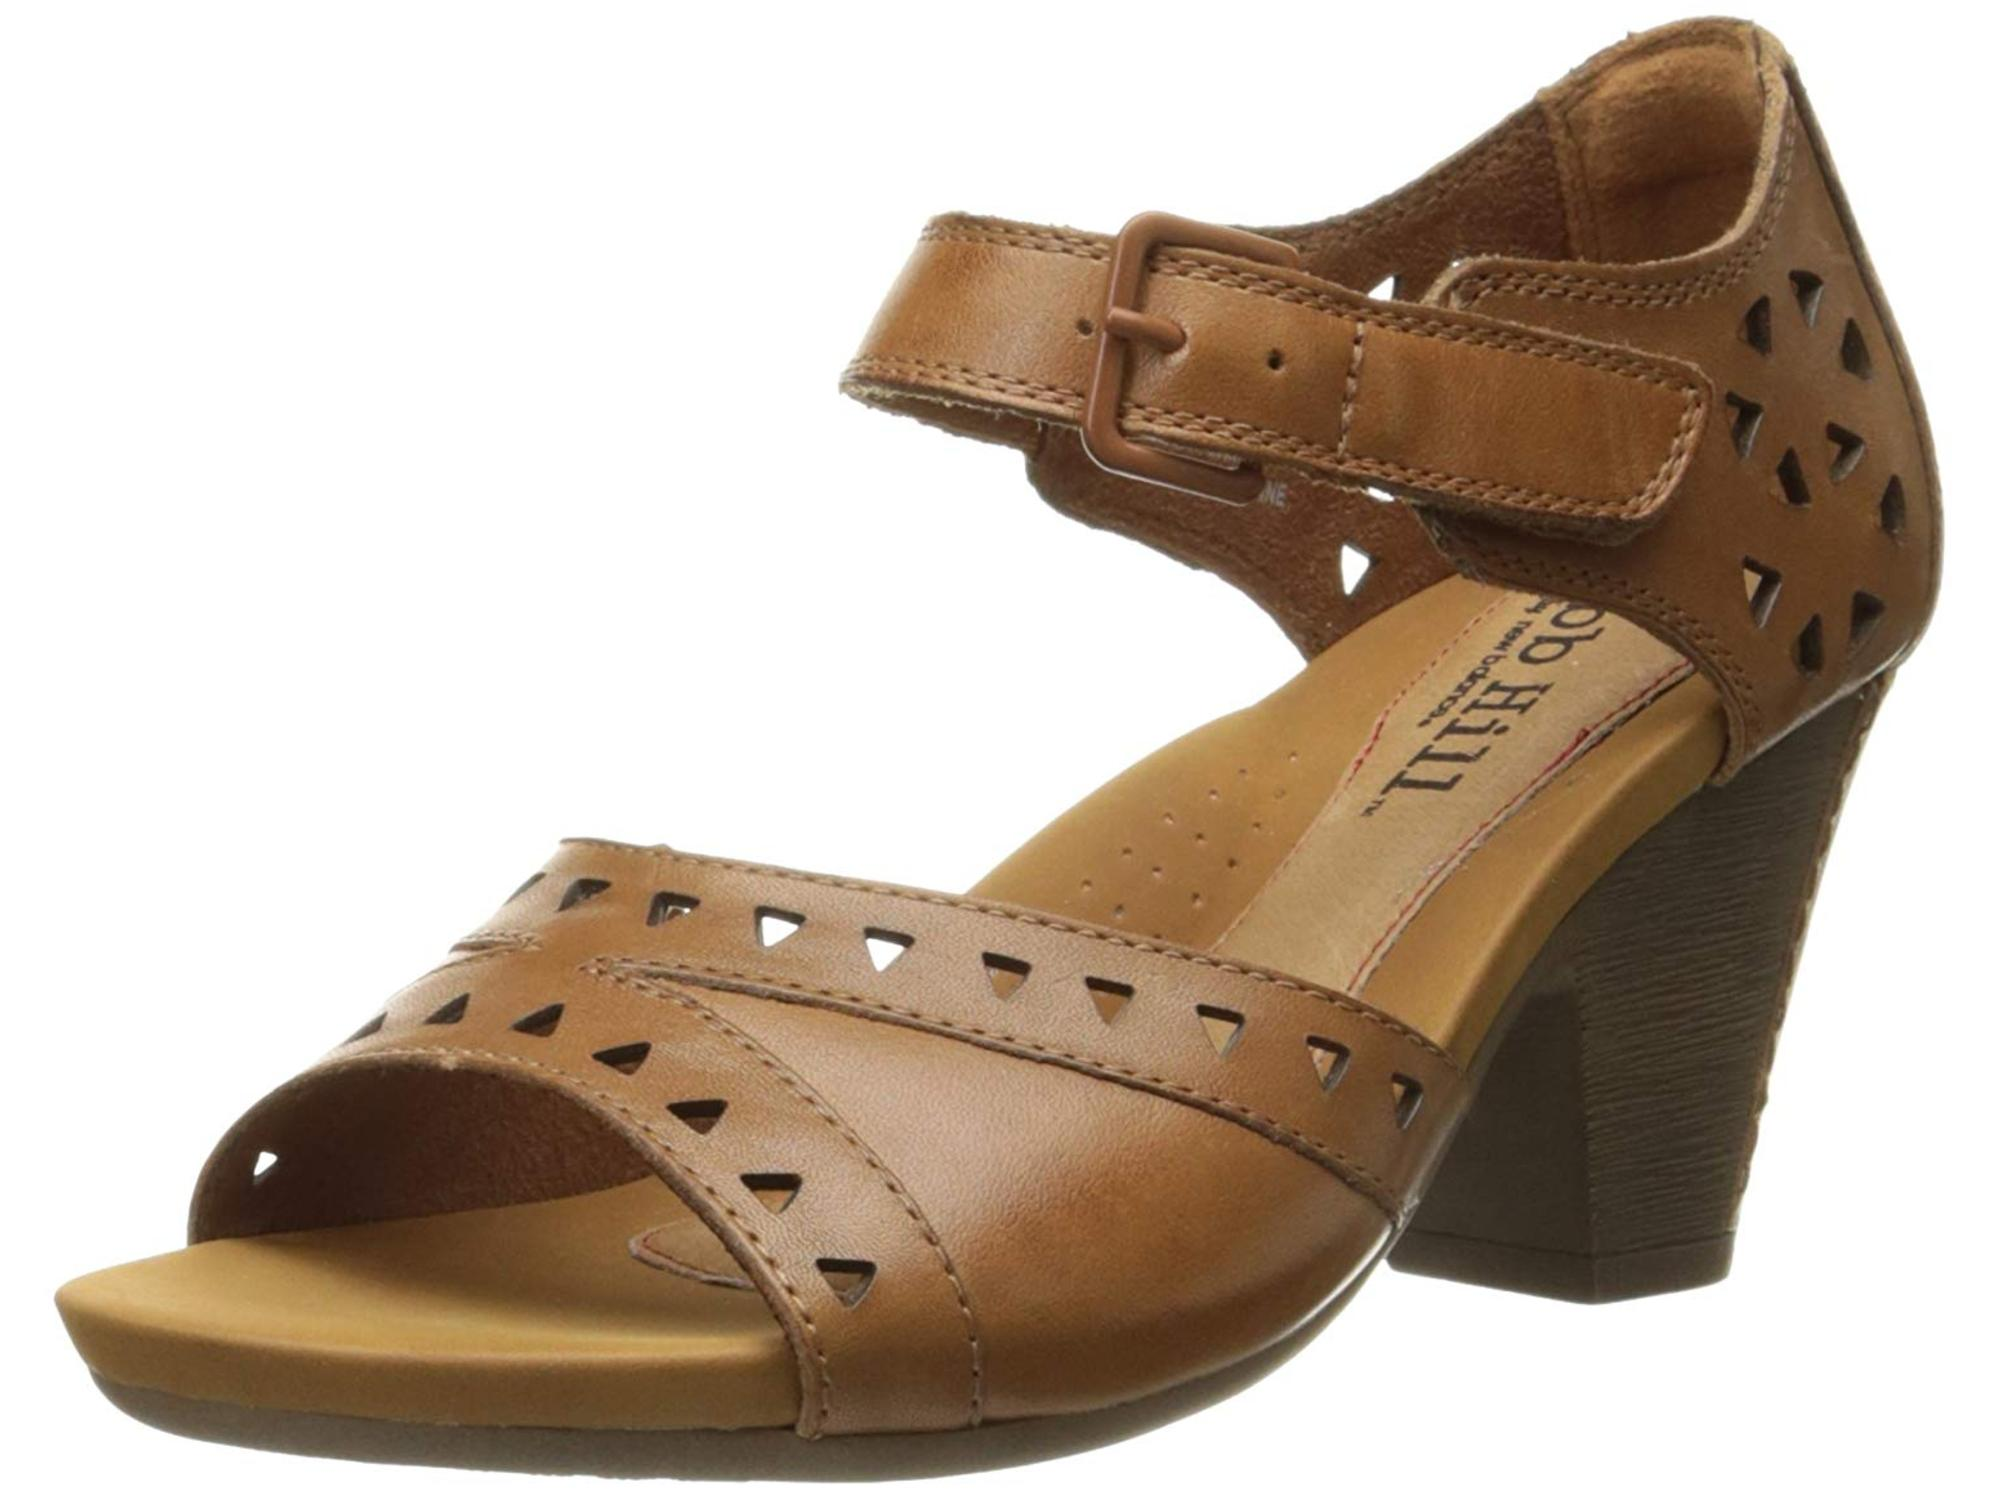 1688bdf2b25 Cobb hill rockport womens trista heeled sandal jpg 2000x1500 Cobb hill  sandals for women